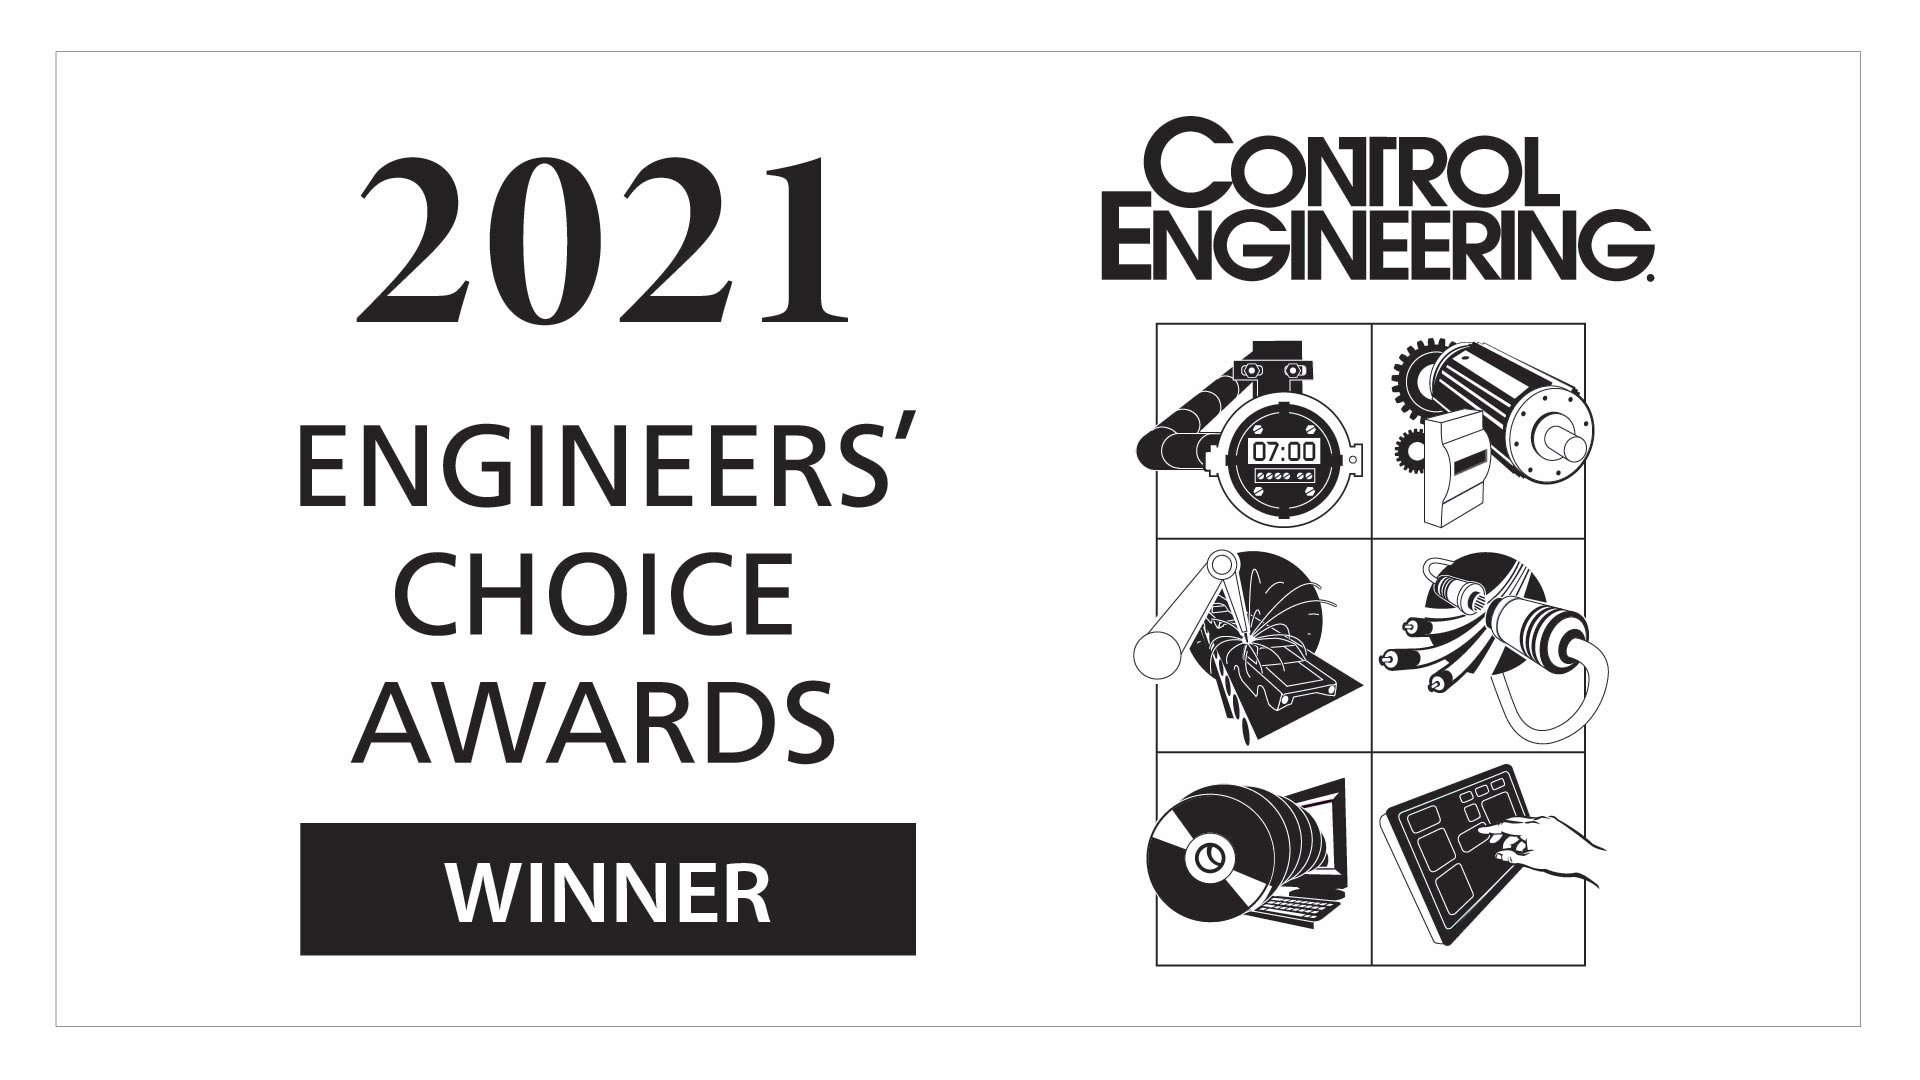 Logotipo del Ganador del Control Engineering Engineers' Choice Award 2021